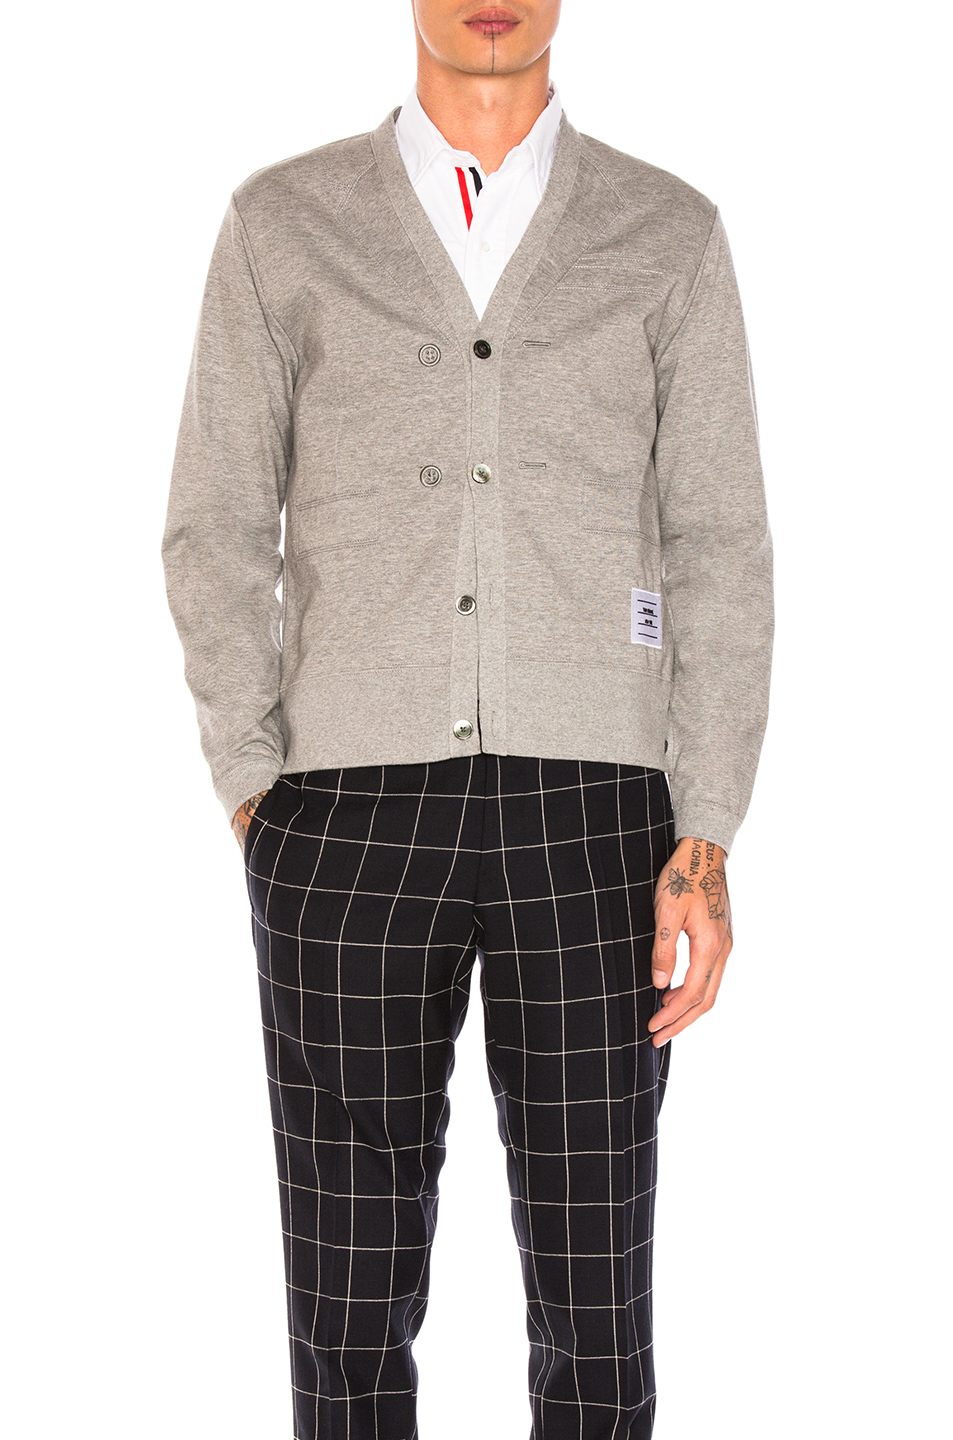 Thom Browne Trompe L'Oeil Sport Coat Cardigan in Gray